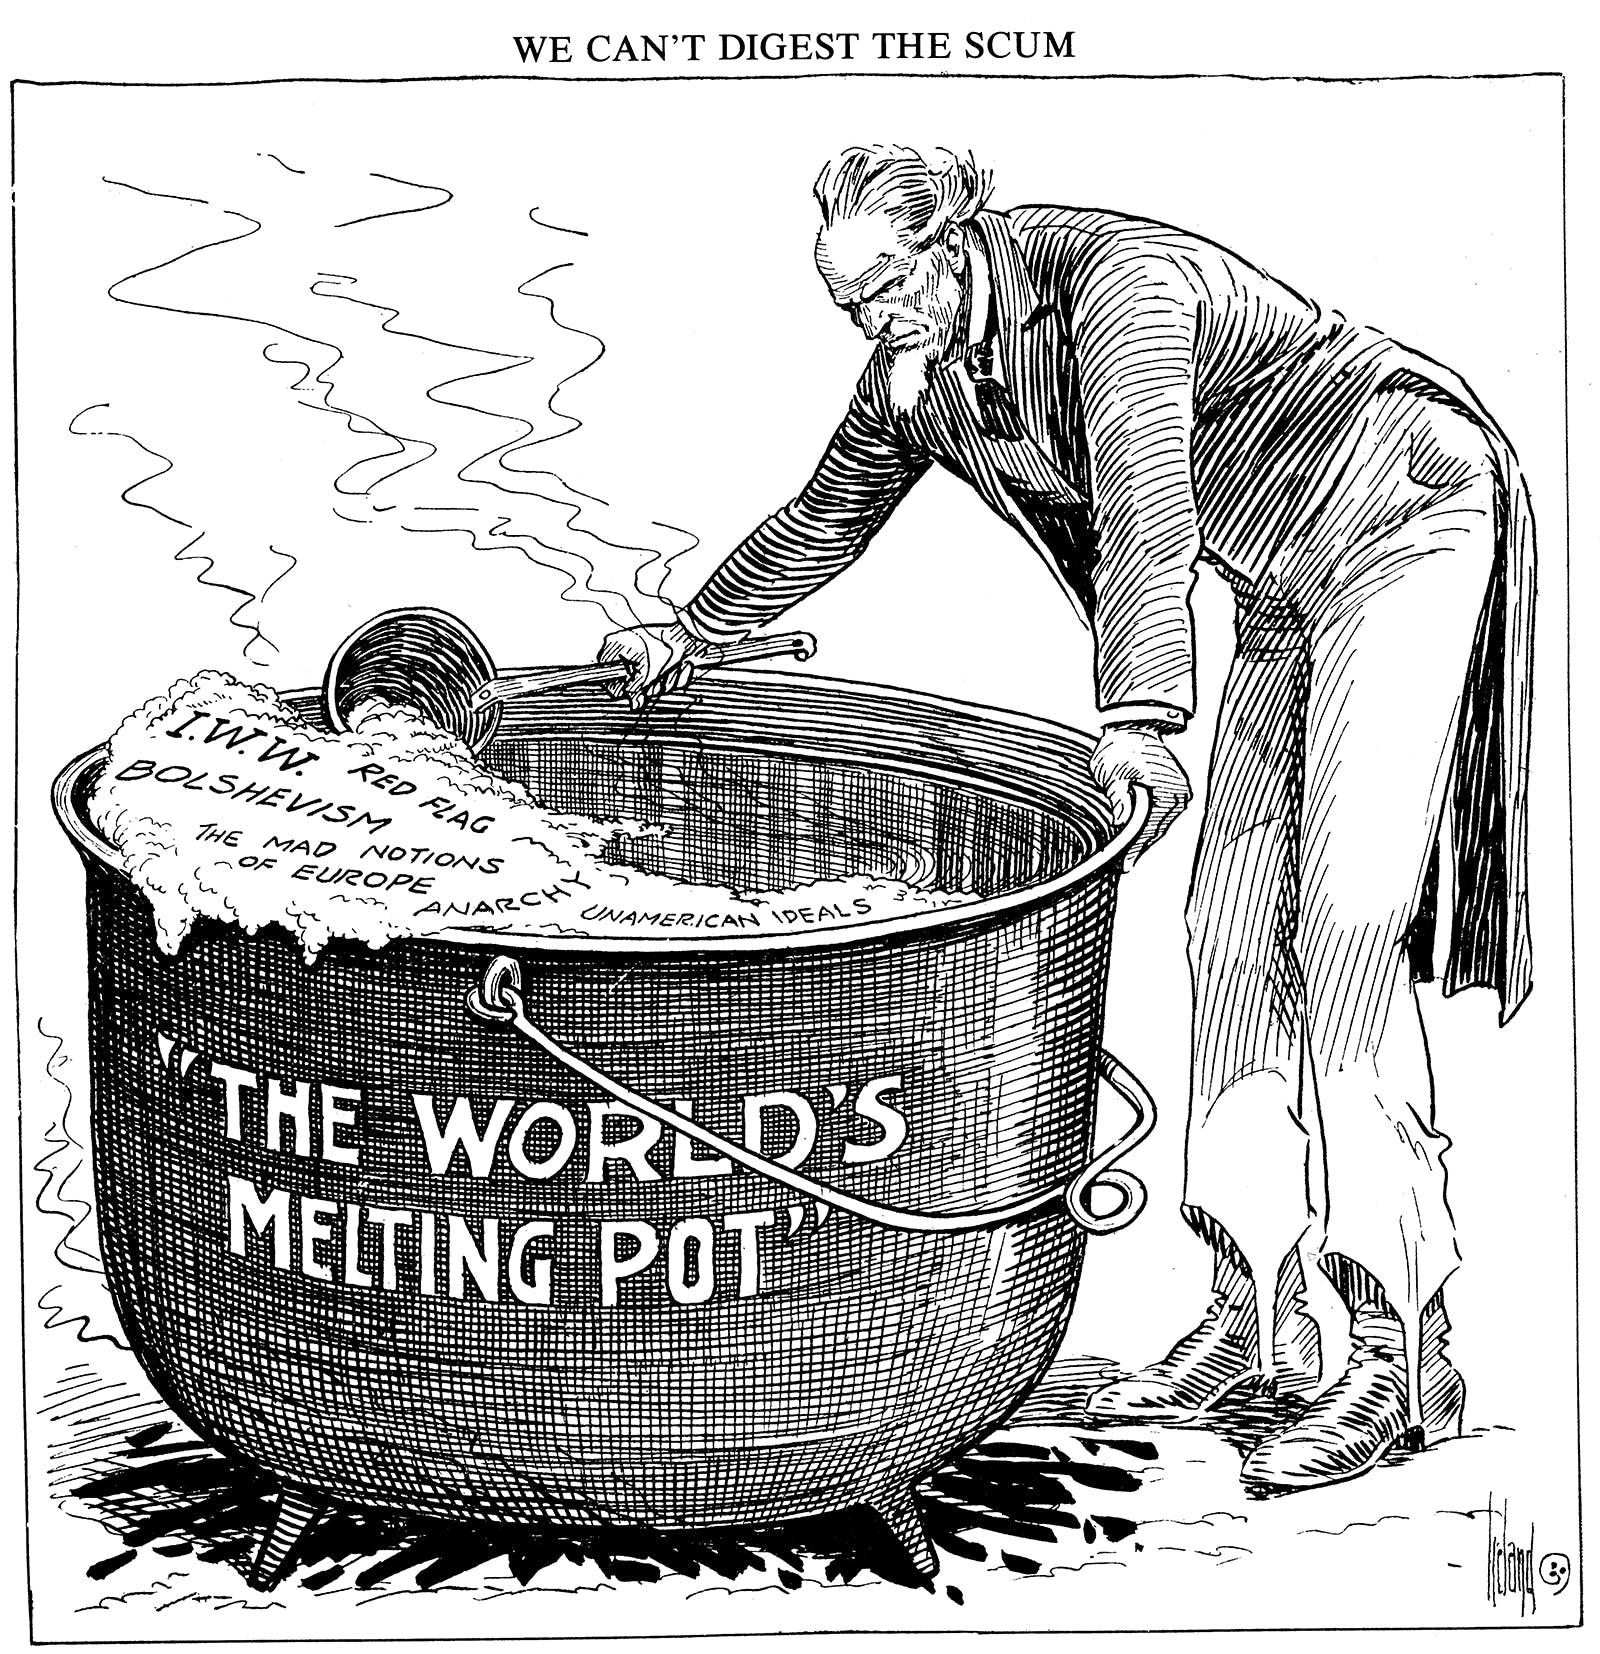 1919-cartoon-immigration-fears-100-years-trump-racism-1-3d8